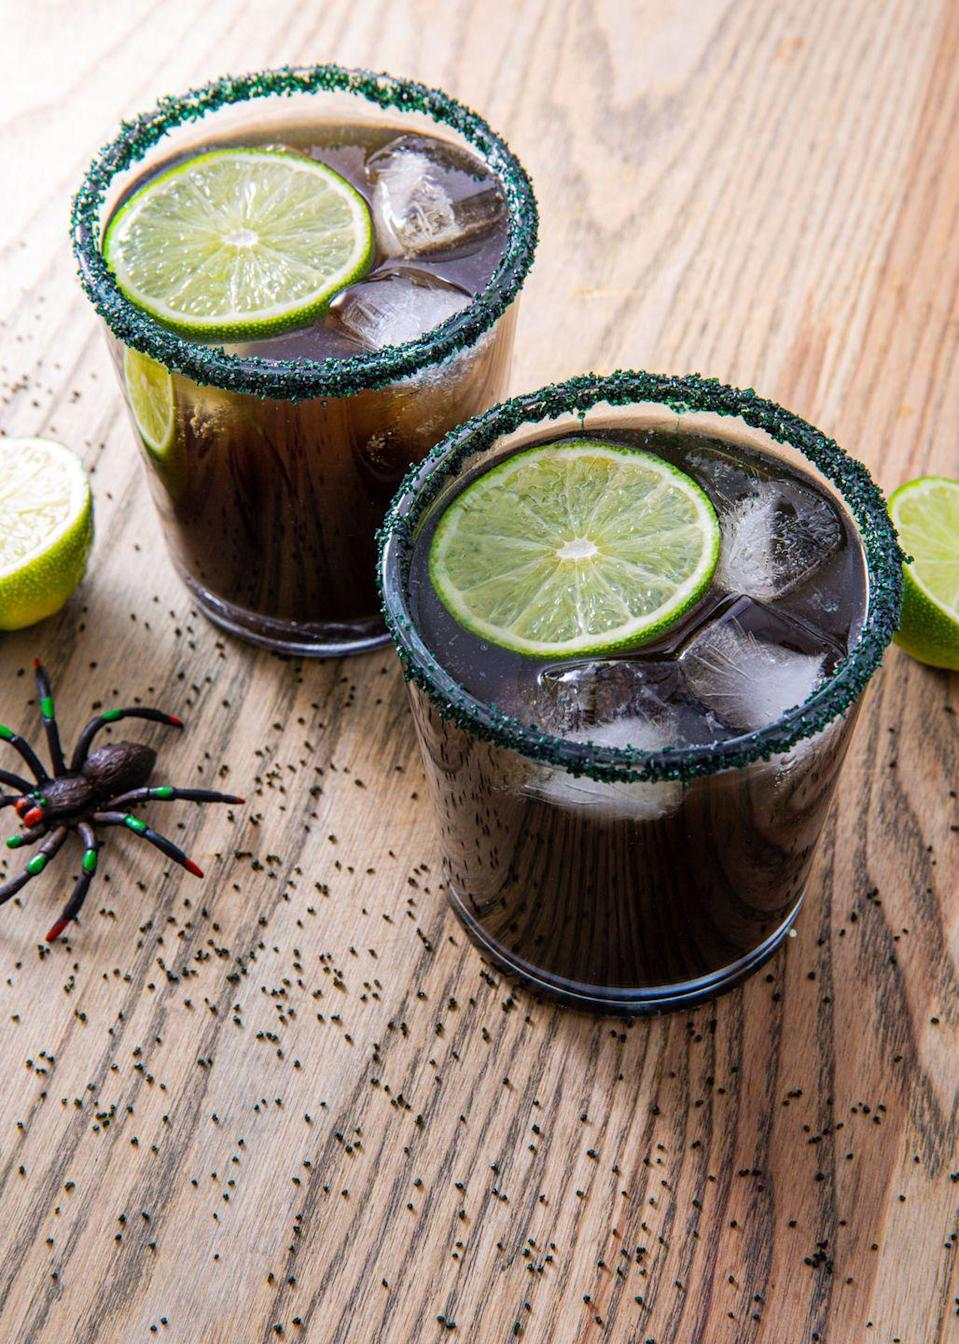 "<p>Pour some black magic this Halloween!</p><p>Get the recipe from <a href=""https://www.delish.com/cooking/recipe-ideas/recipes/a55953/black-magic-margaritas-recipe/"" rel=""nofollow noopener"" target=""_blank"" data-ylk=""slk:Delish"" class=""link rapid-noclick-resp"">Delish</a>.</p>"